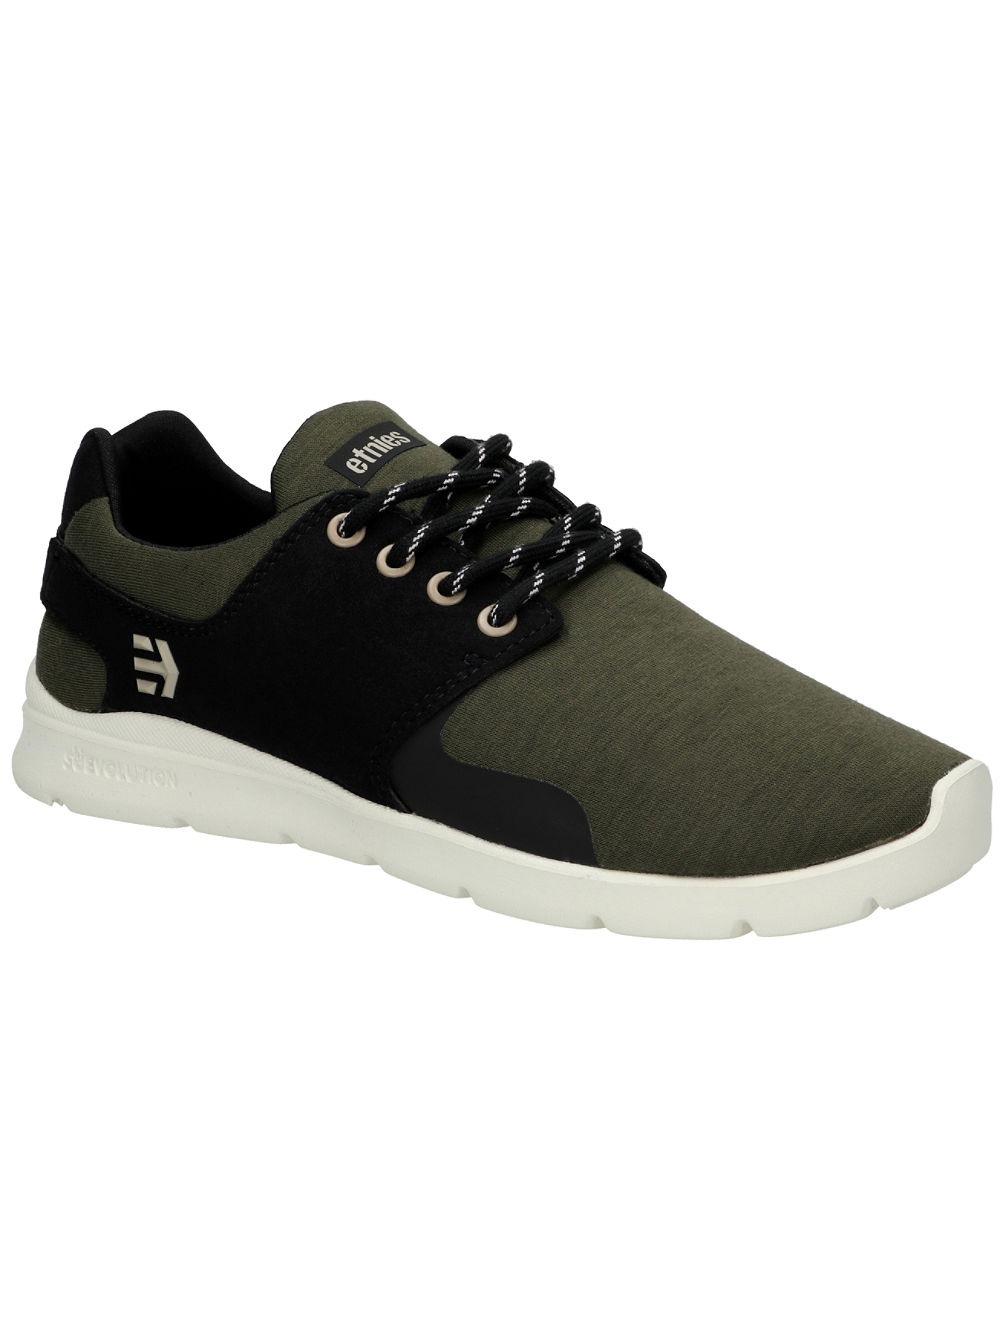 Scout XT Sneakers Women